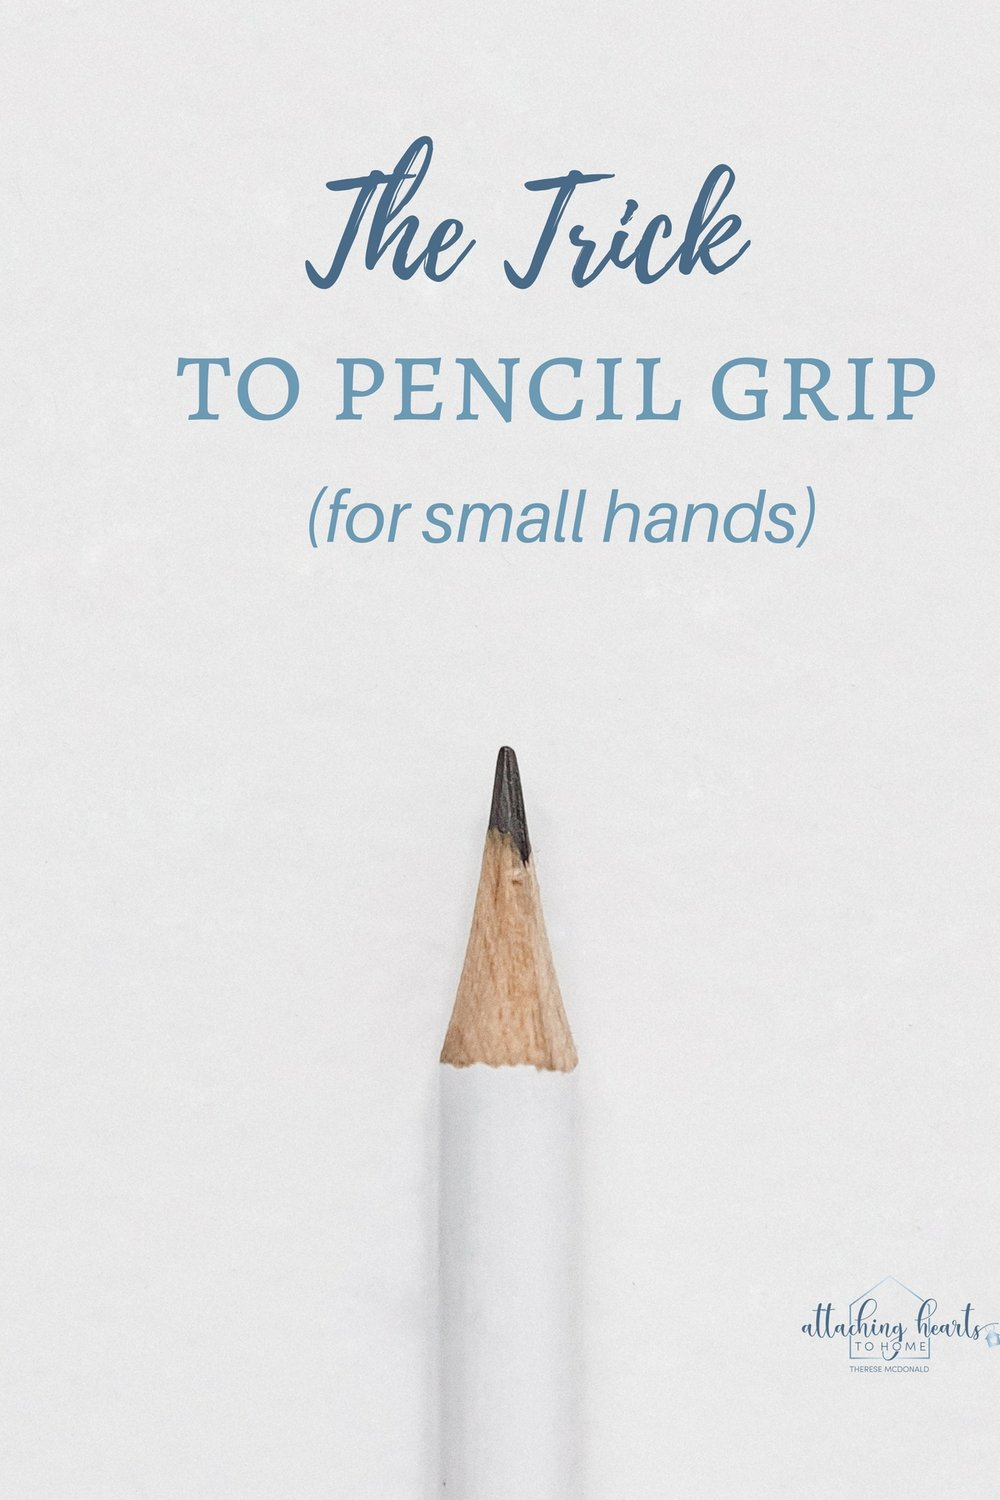 The trick to pencil grip for small hands